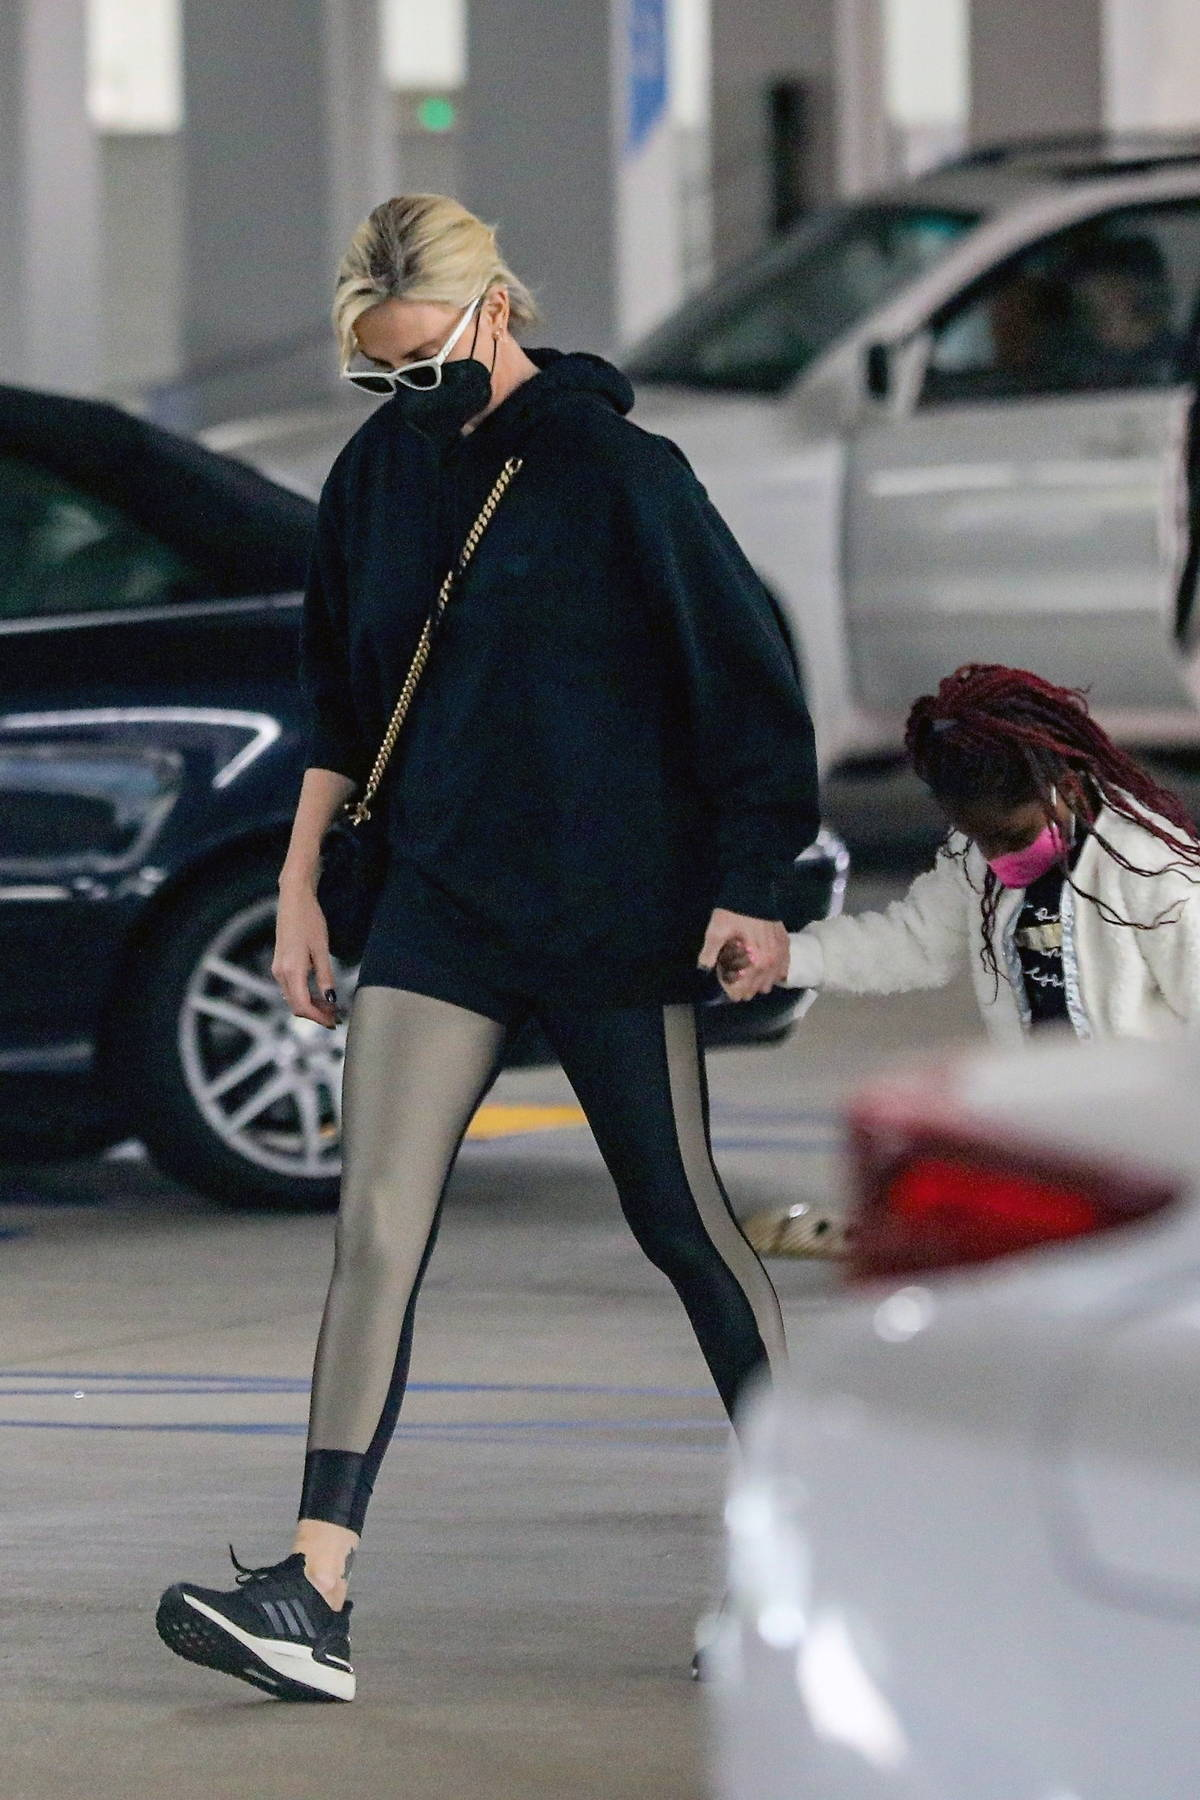 Charlize Theron takes her daughter to Eataly for some shopping at the Westfield Century City mall in Los Angeles